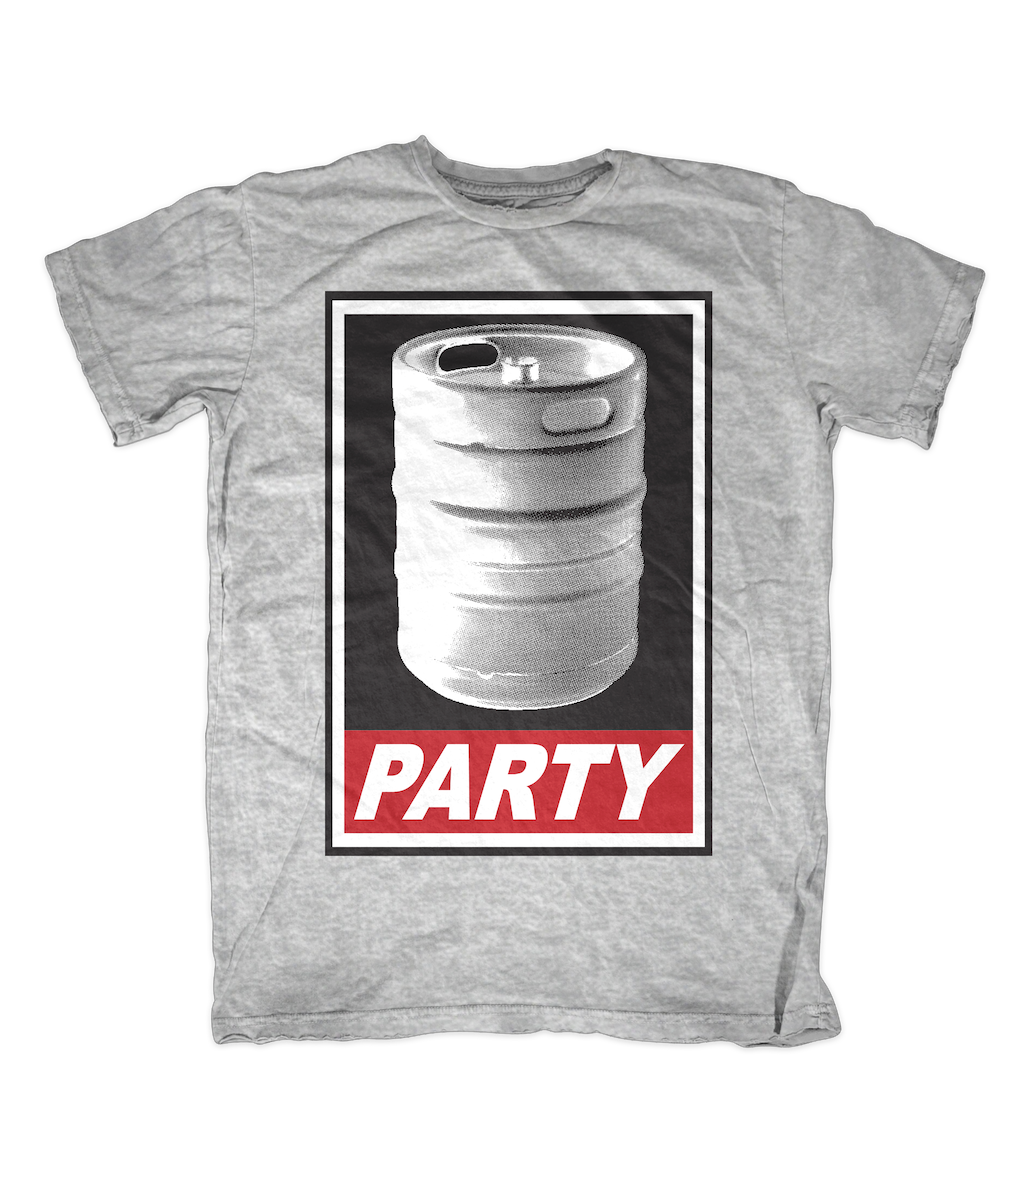 Keg_party_grey_mock_smaller_original